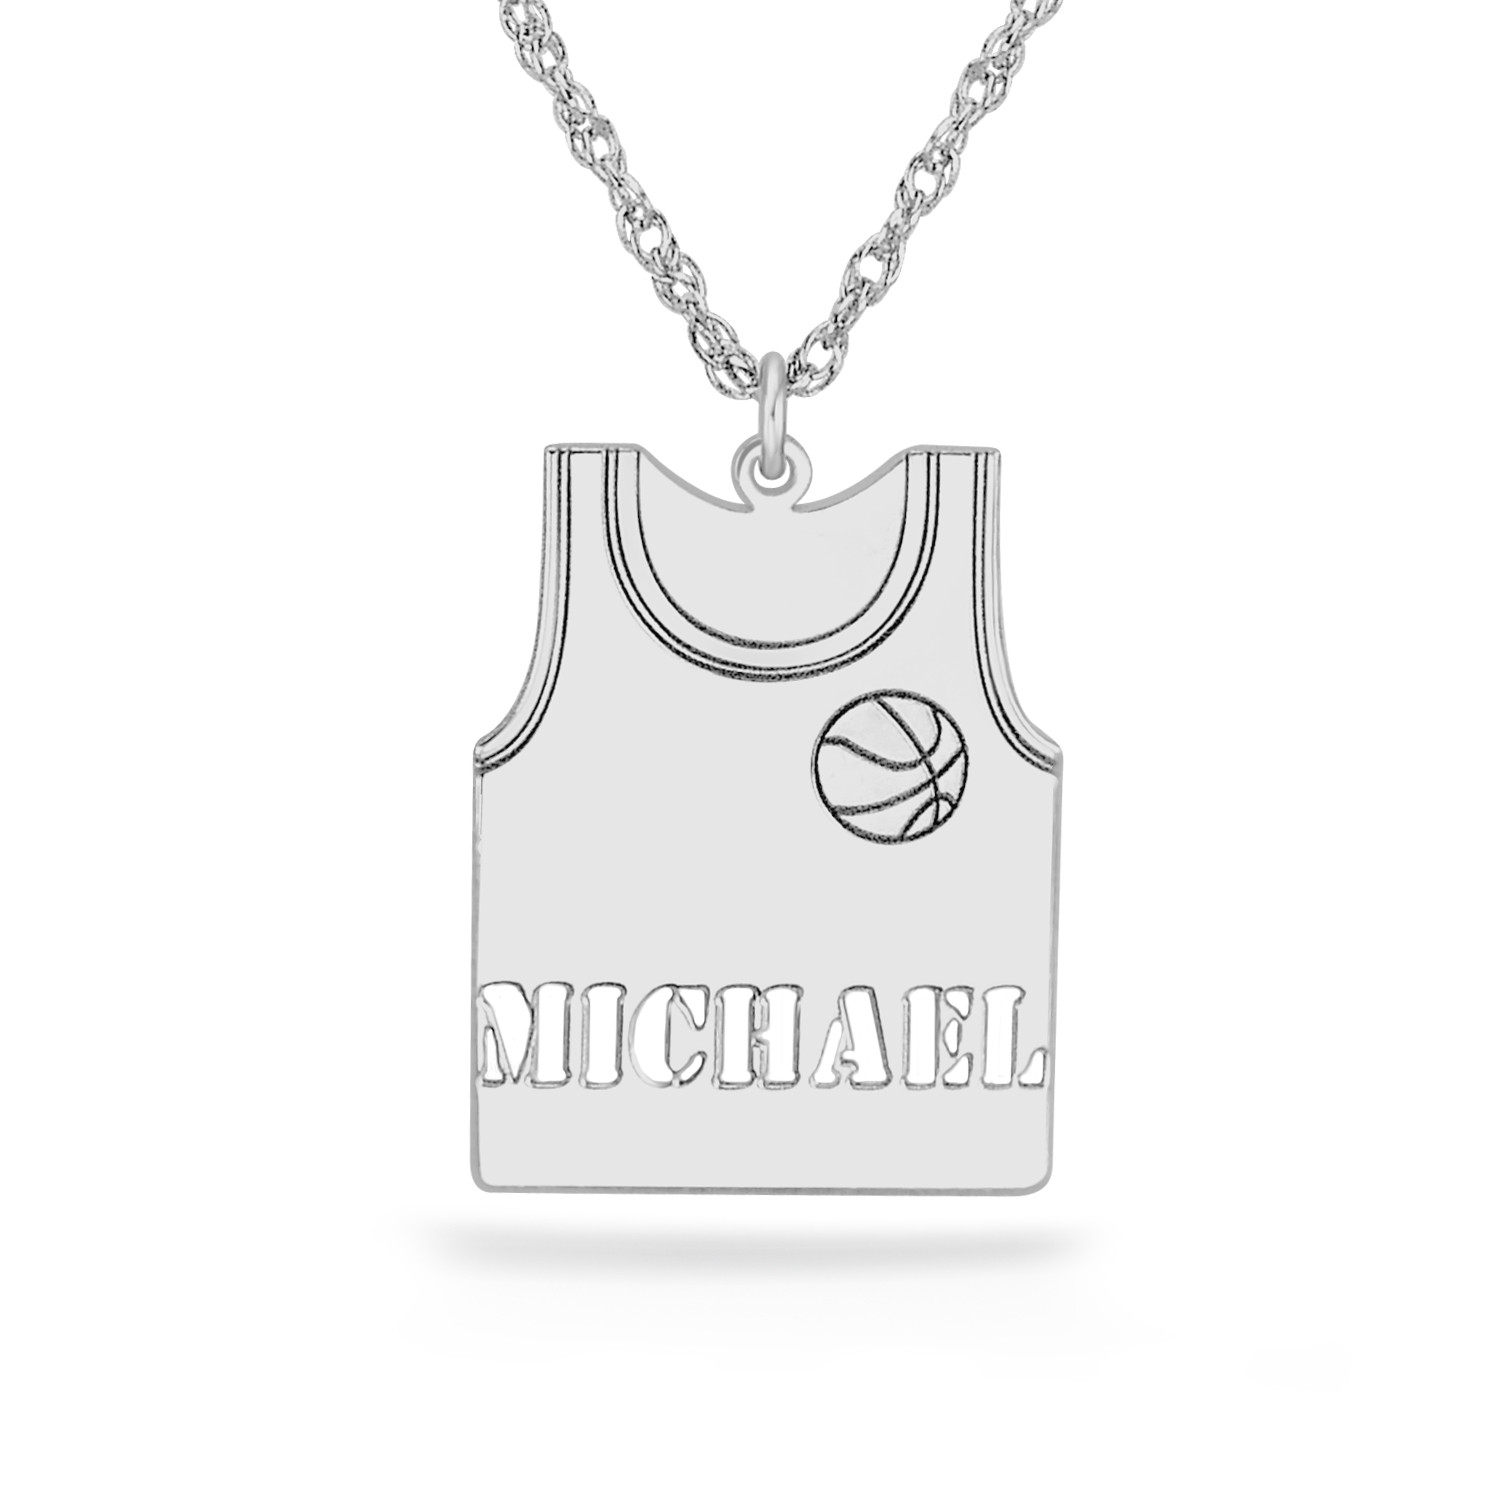 Silver 23 x 17mm Personalized Basketball Jersey Pendant